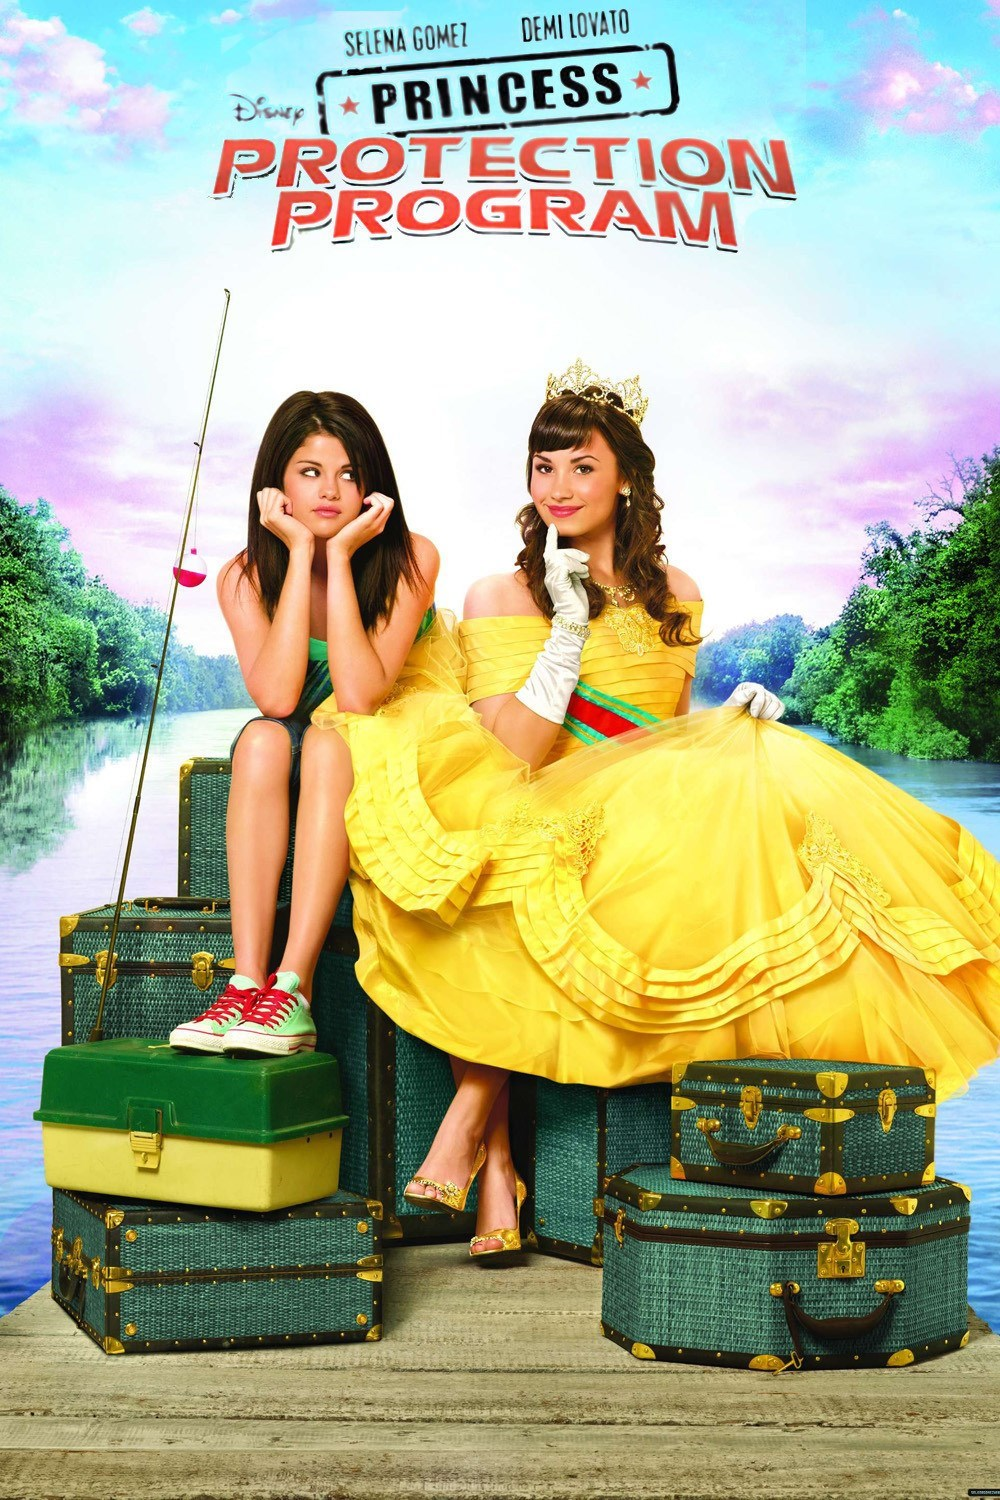 Affiche Poster princess protection program mission rosalinda disney channel